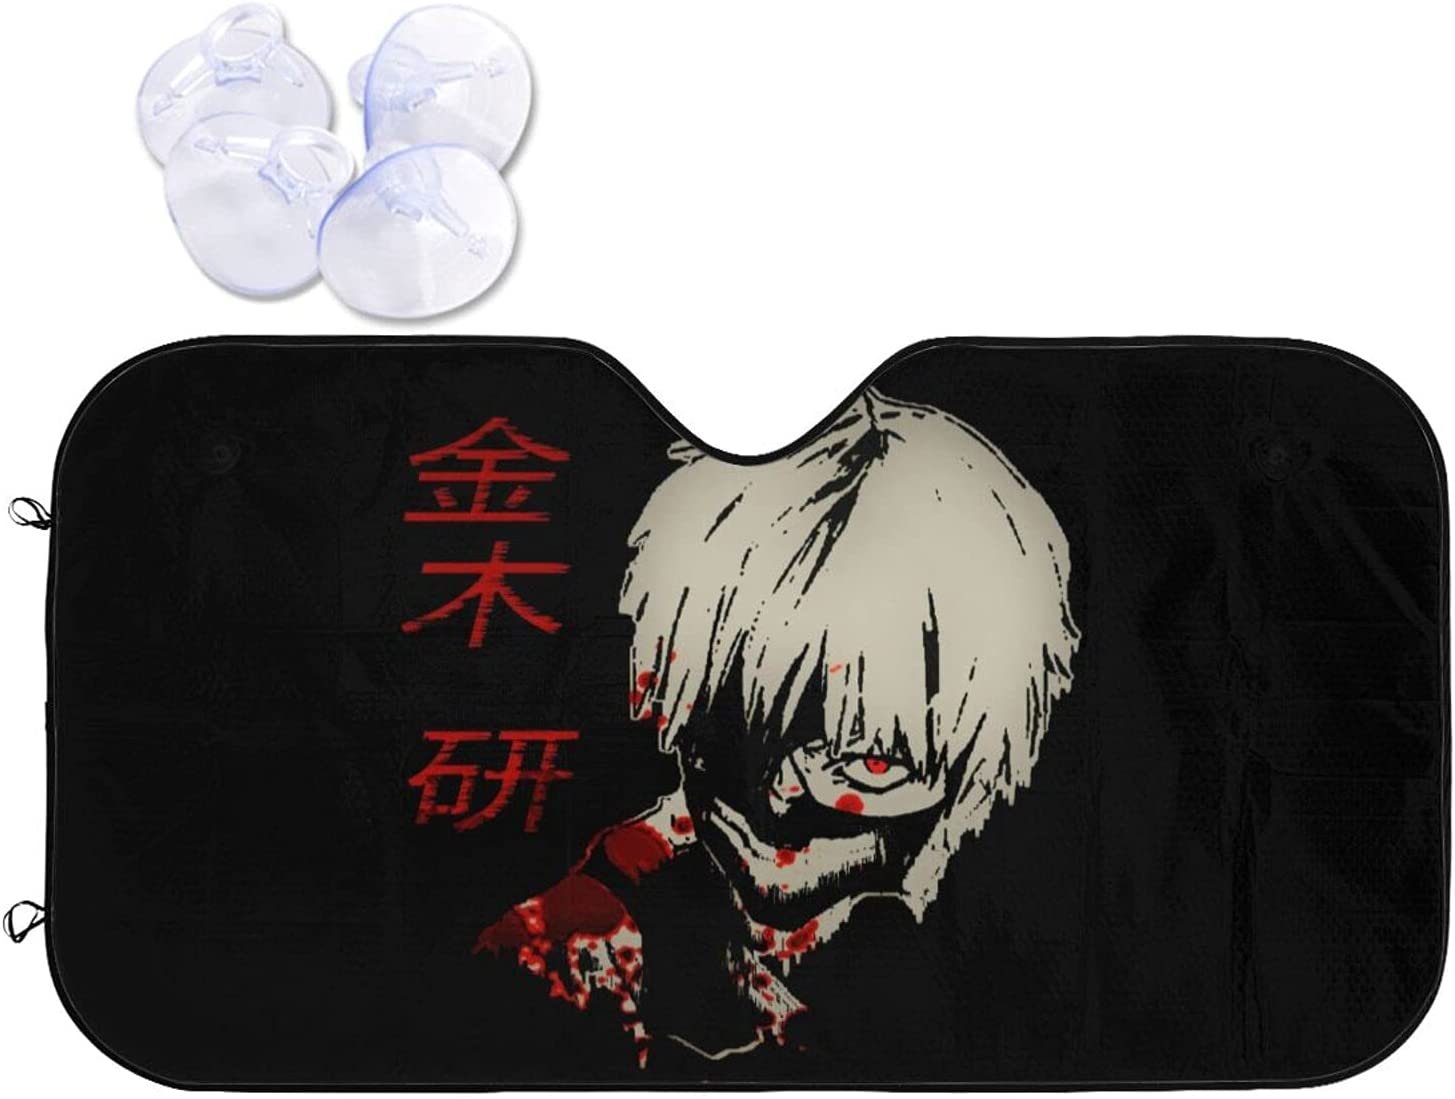 Tokyo Ghoul Car Sunshade Heat and Prevention Selling selling Very popular Viso Windshield Sun